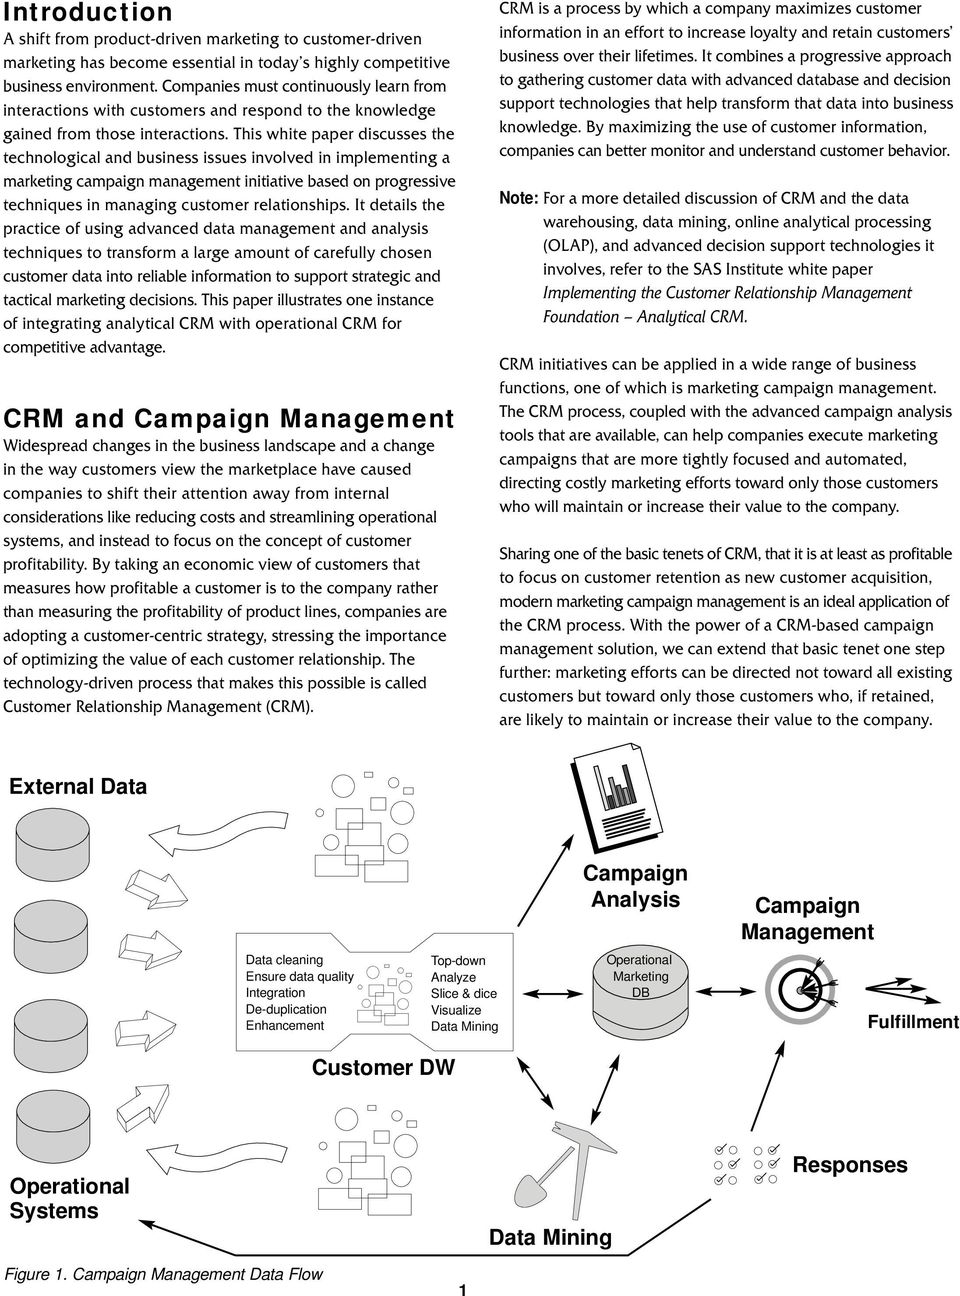 This white paper discusses the technological and business issues involved in implementing a marketing campaign management initiative based on progressive techniques in managing customer relationships.